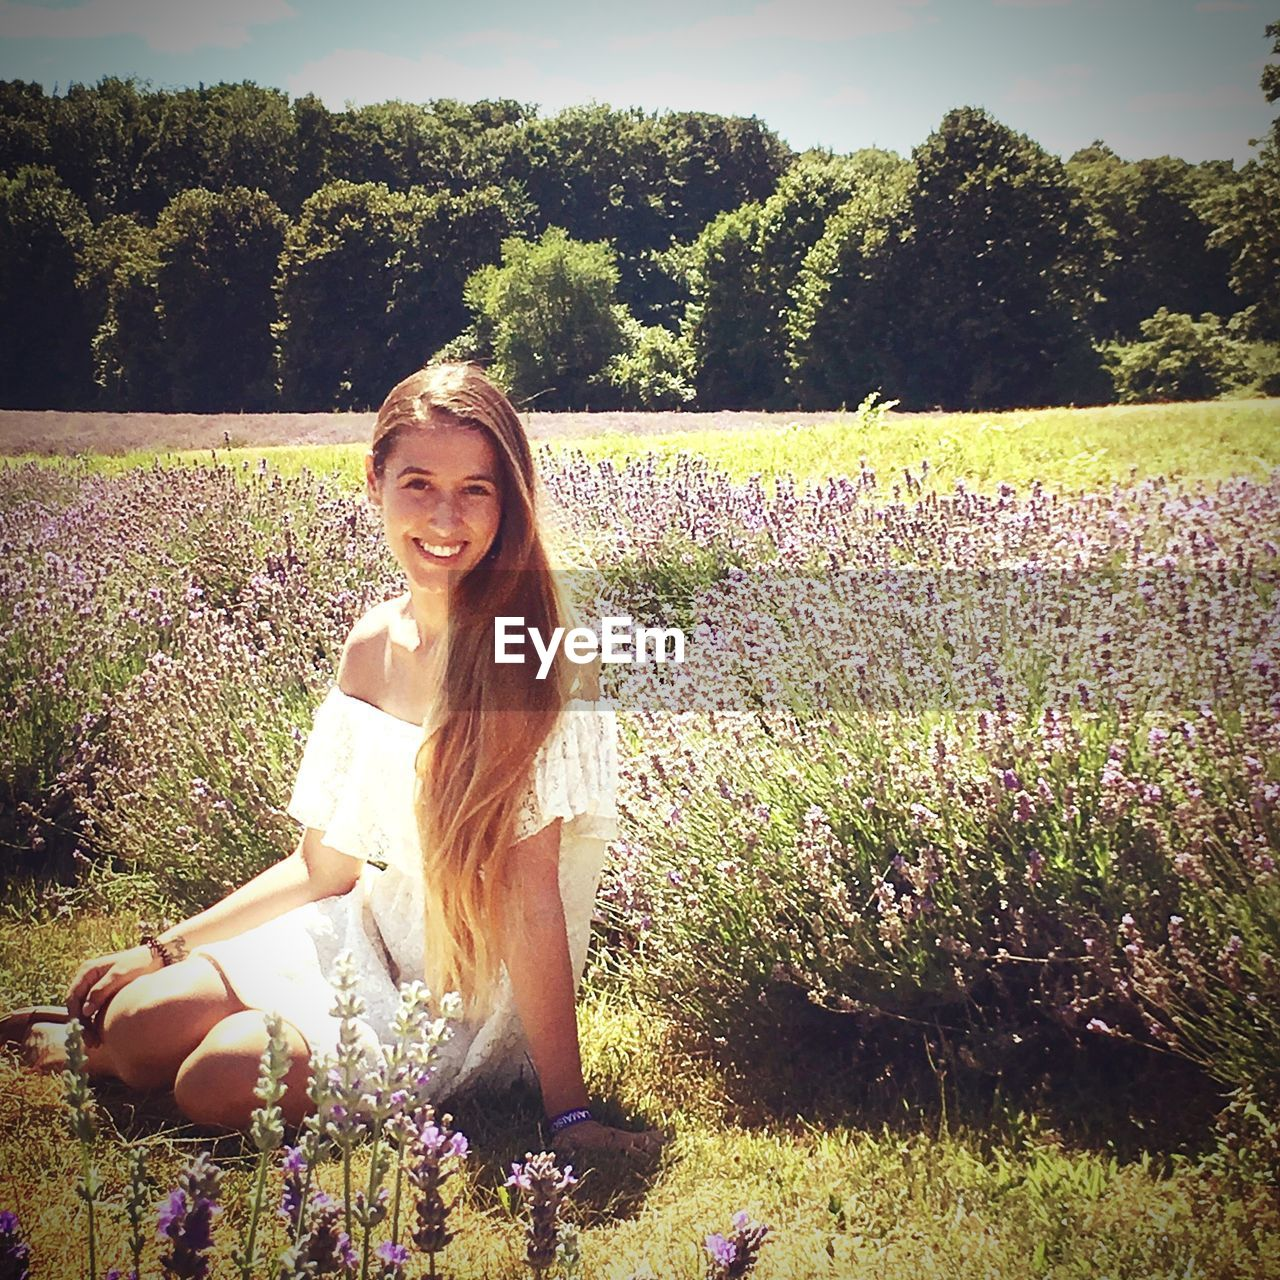 plant, looking at camera, portrait, real people, one person, smiling, leisure activity, flowering plant, flower, young women, tree, women, lifestyles, nature, young adult, growth, field, land, sunlight, hairstyle, hair, beautiful woman, outdoors